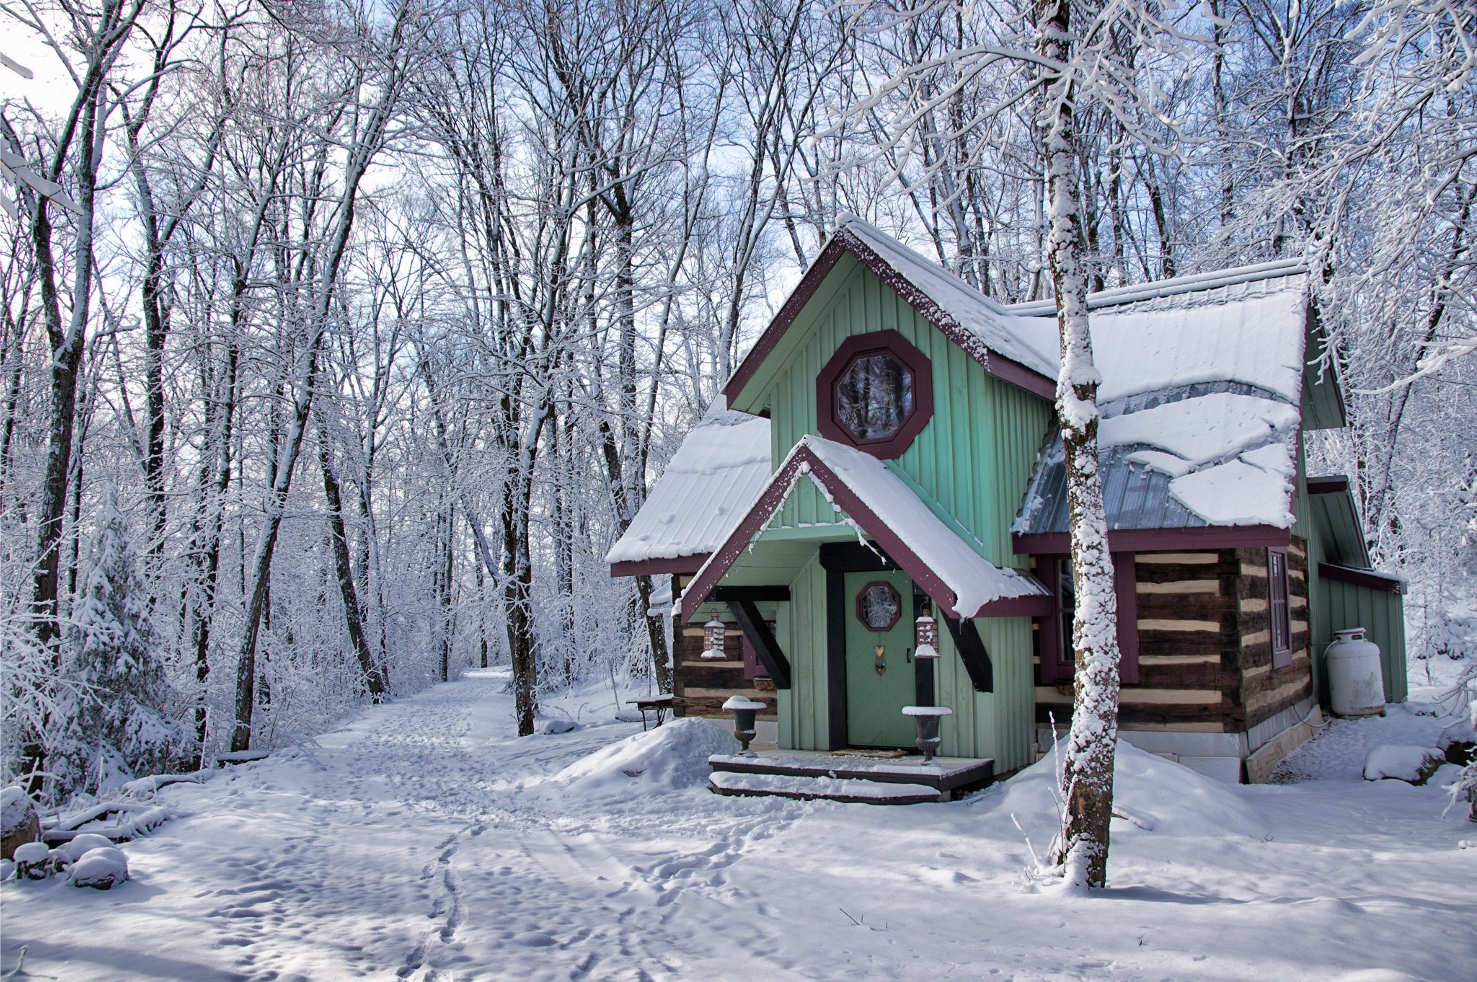 120-year-old log cabin in the woods in winter